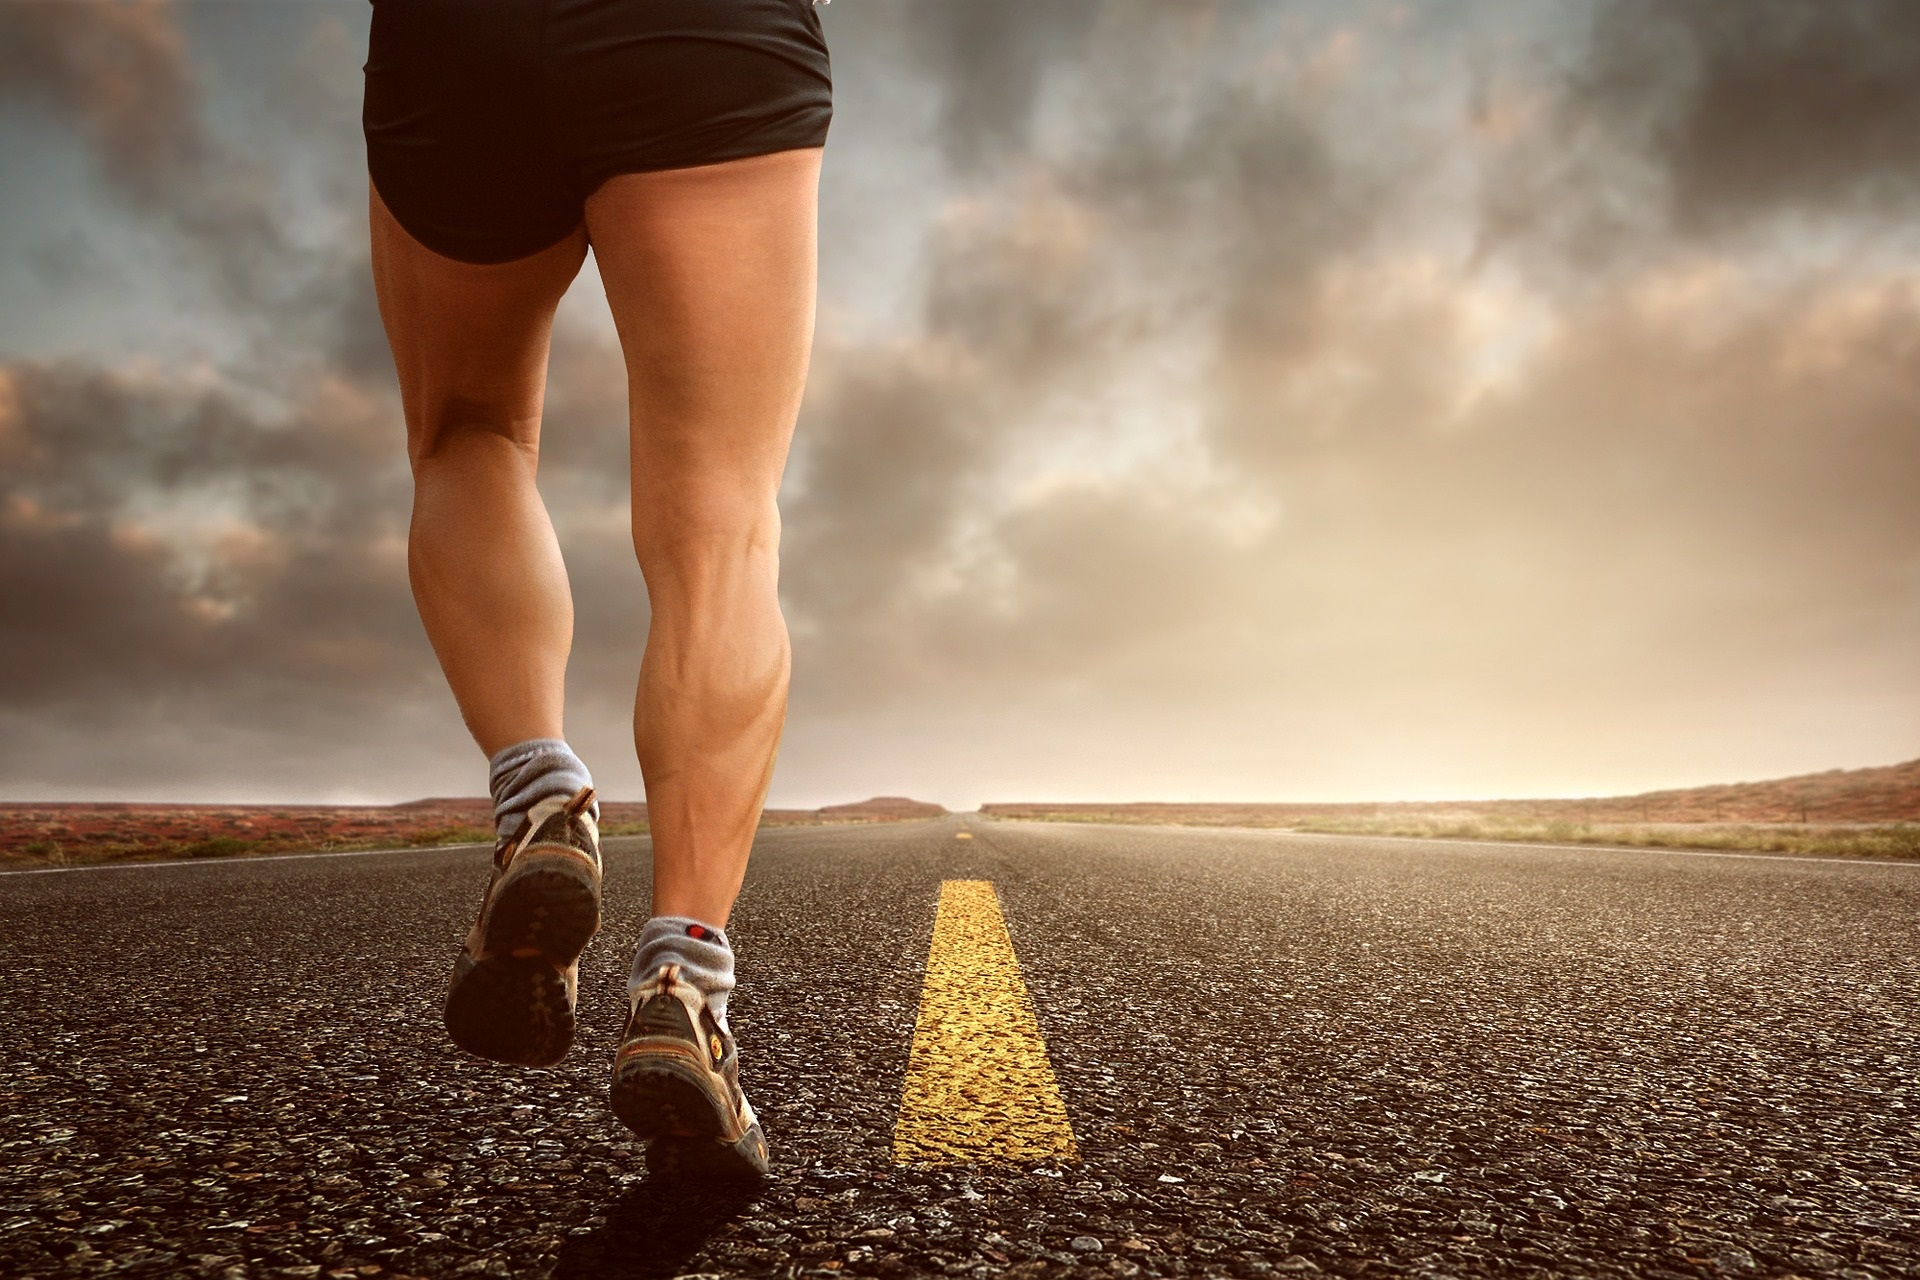 Some experts are starting to say that your running stride or form doesn't matter and to go with whatever feel natural. However, physical therapists see a different side to the story.